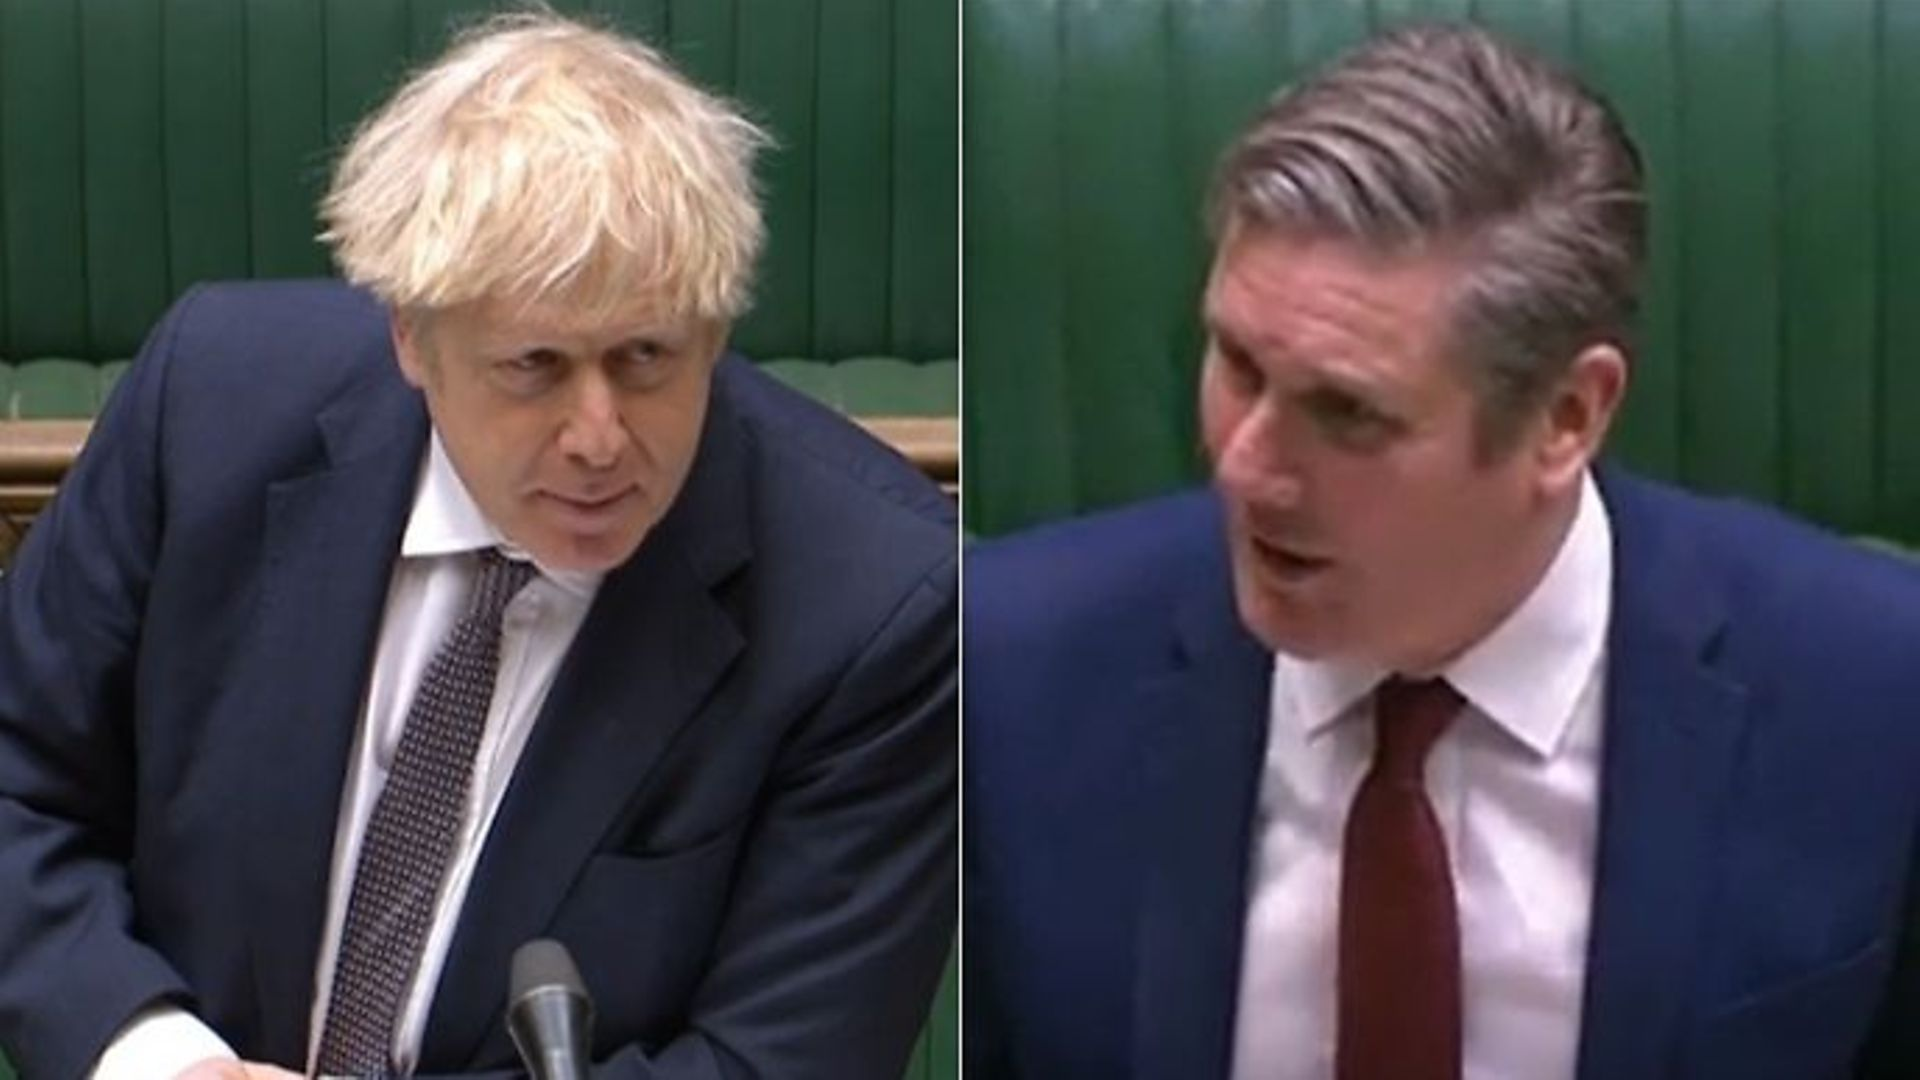 Boris Johnson (L) and Keir Starmer during Prime Minister's Questions - Credit: Parliamentlive.tv